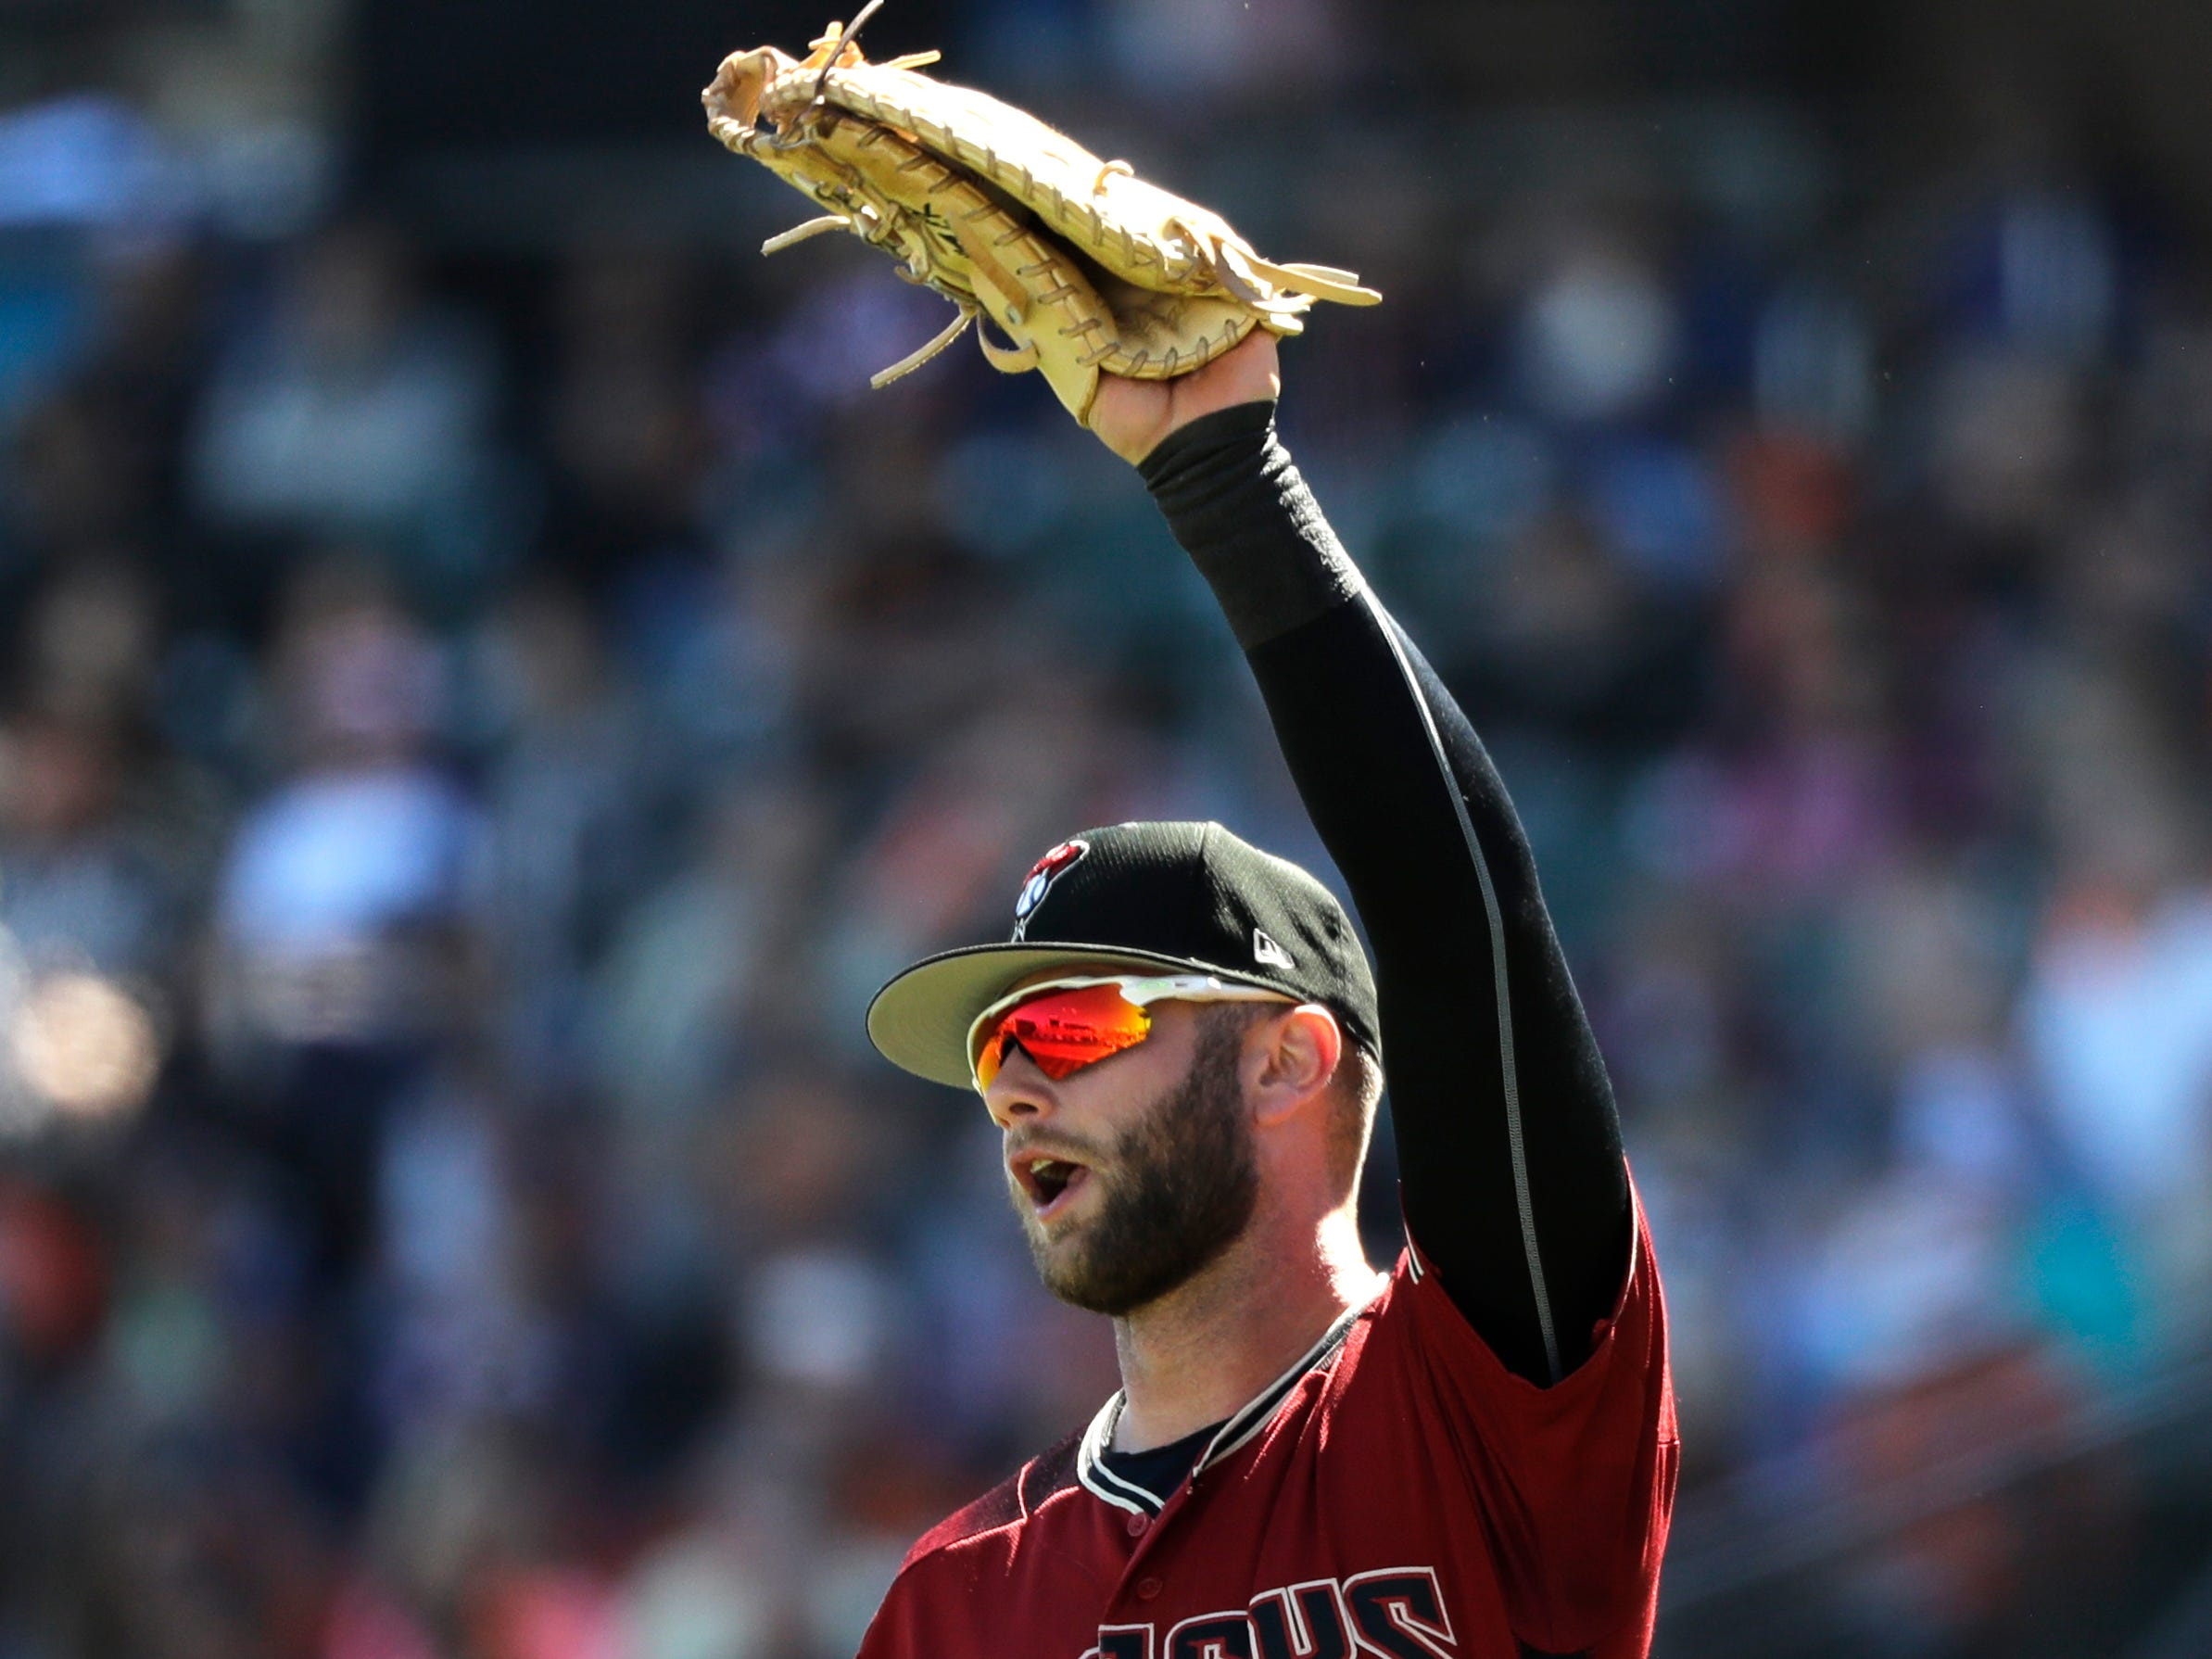 Arizona Diamondbacks first baseman Christian Walker in action against the San Francisco Giants in a spring training baseball game Thursday, March 14, 2019, in Scottsdale, Ariz.